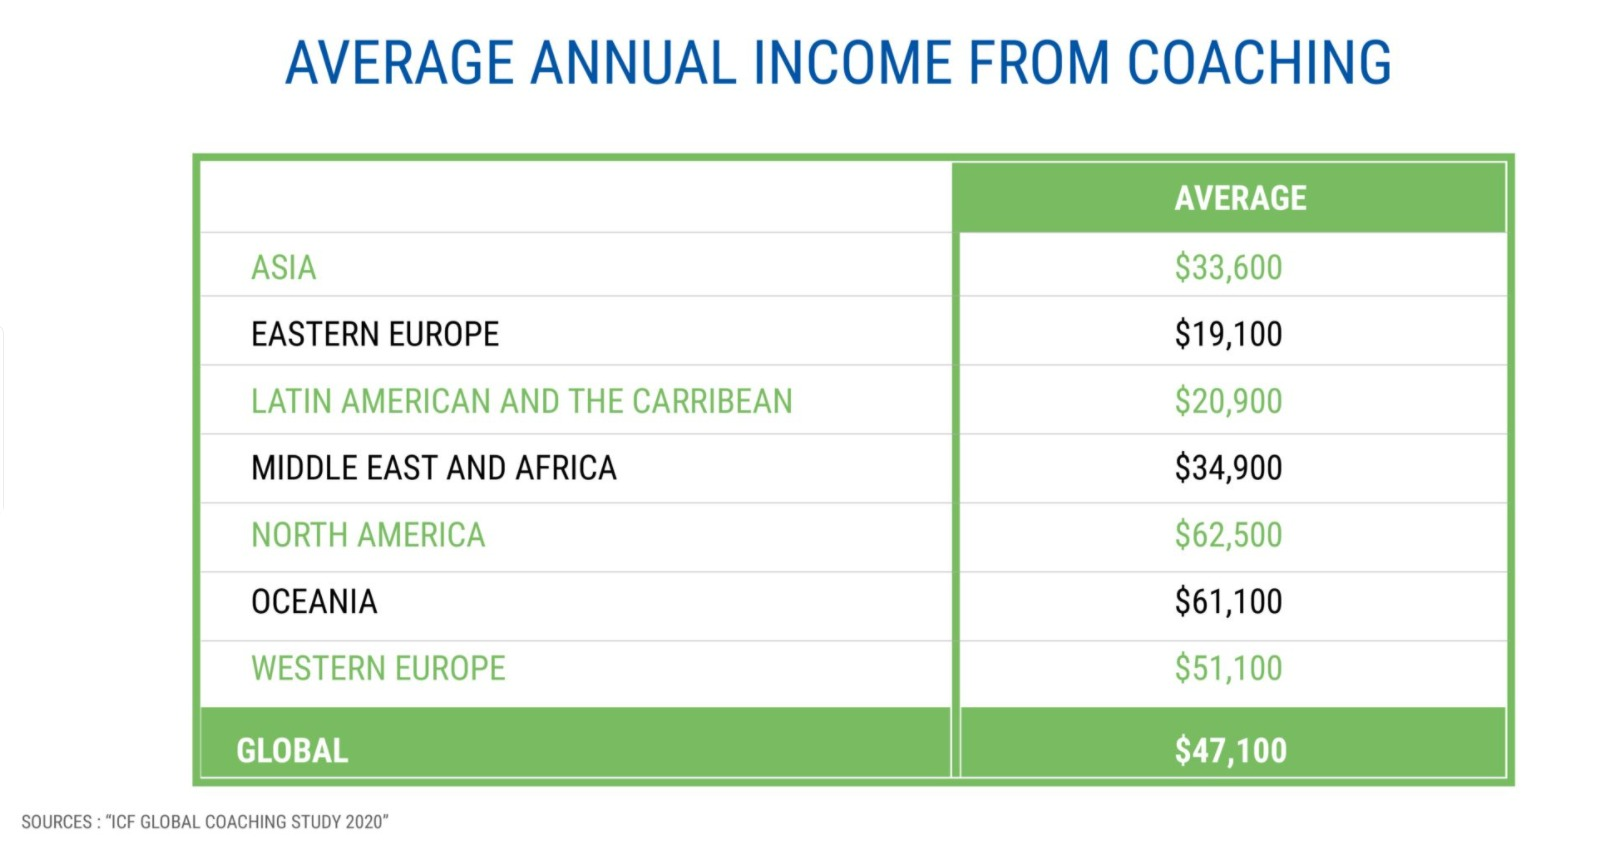 Average annual income from coaching